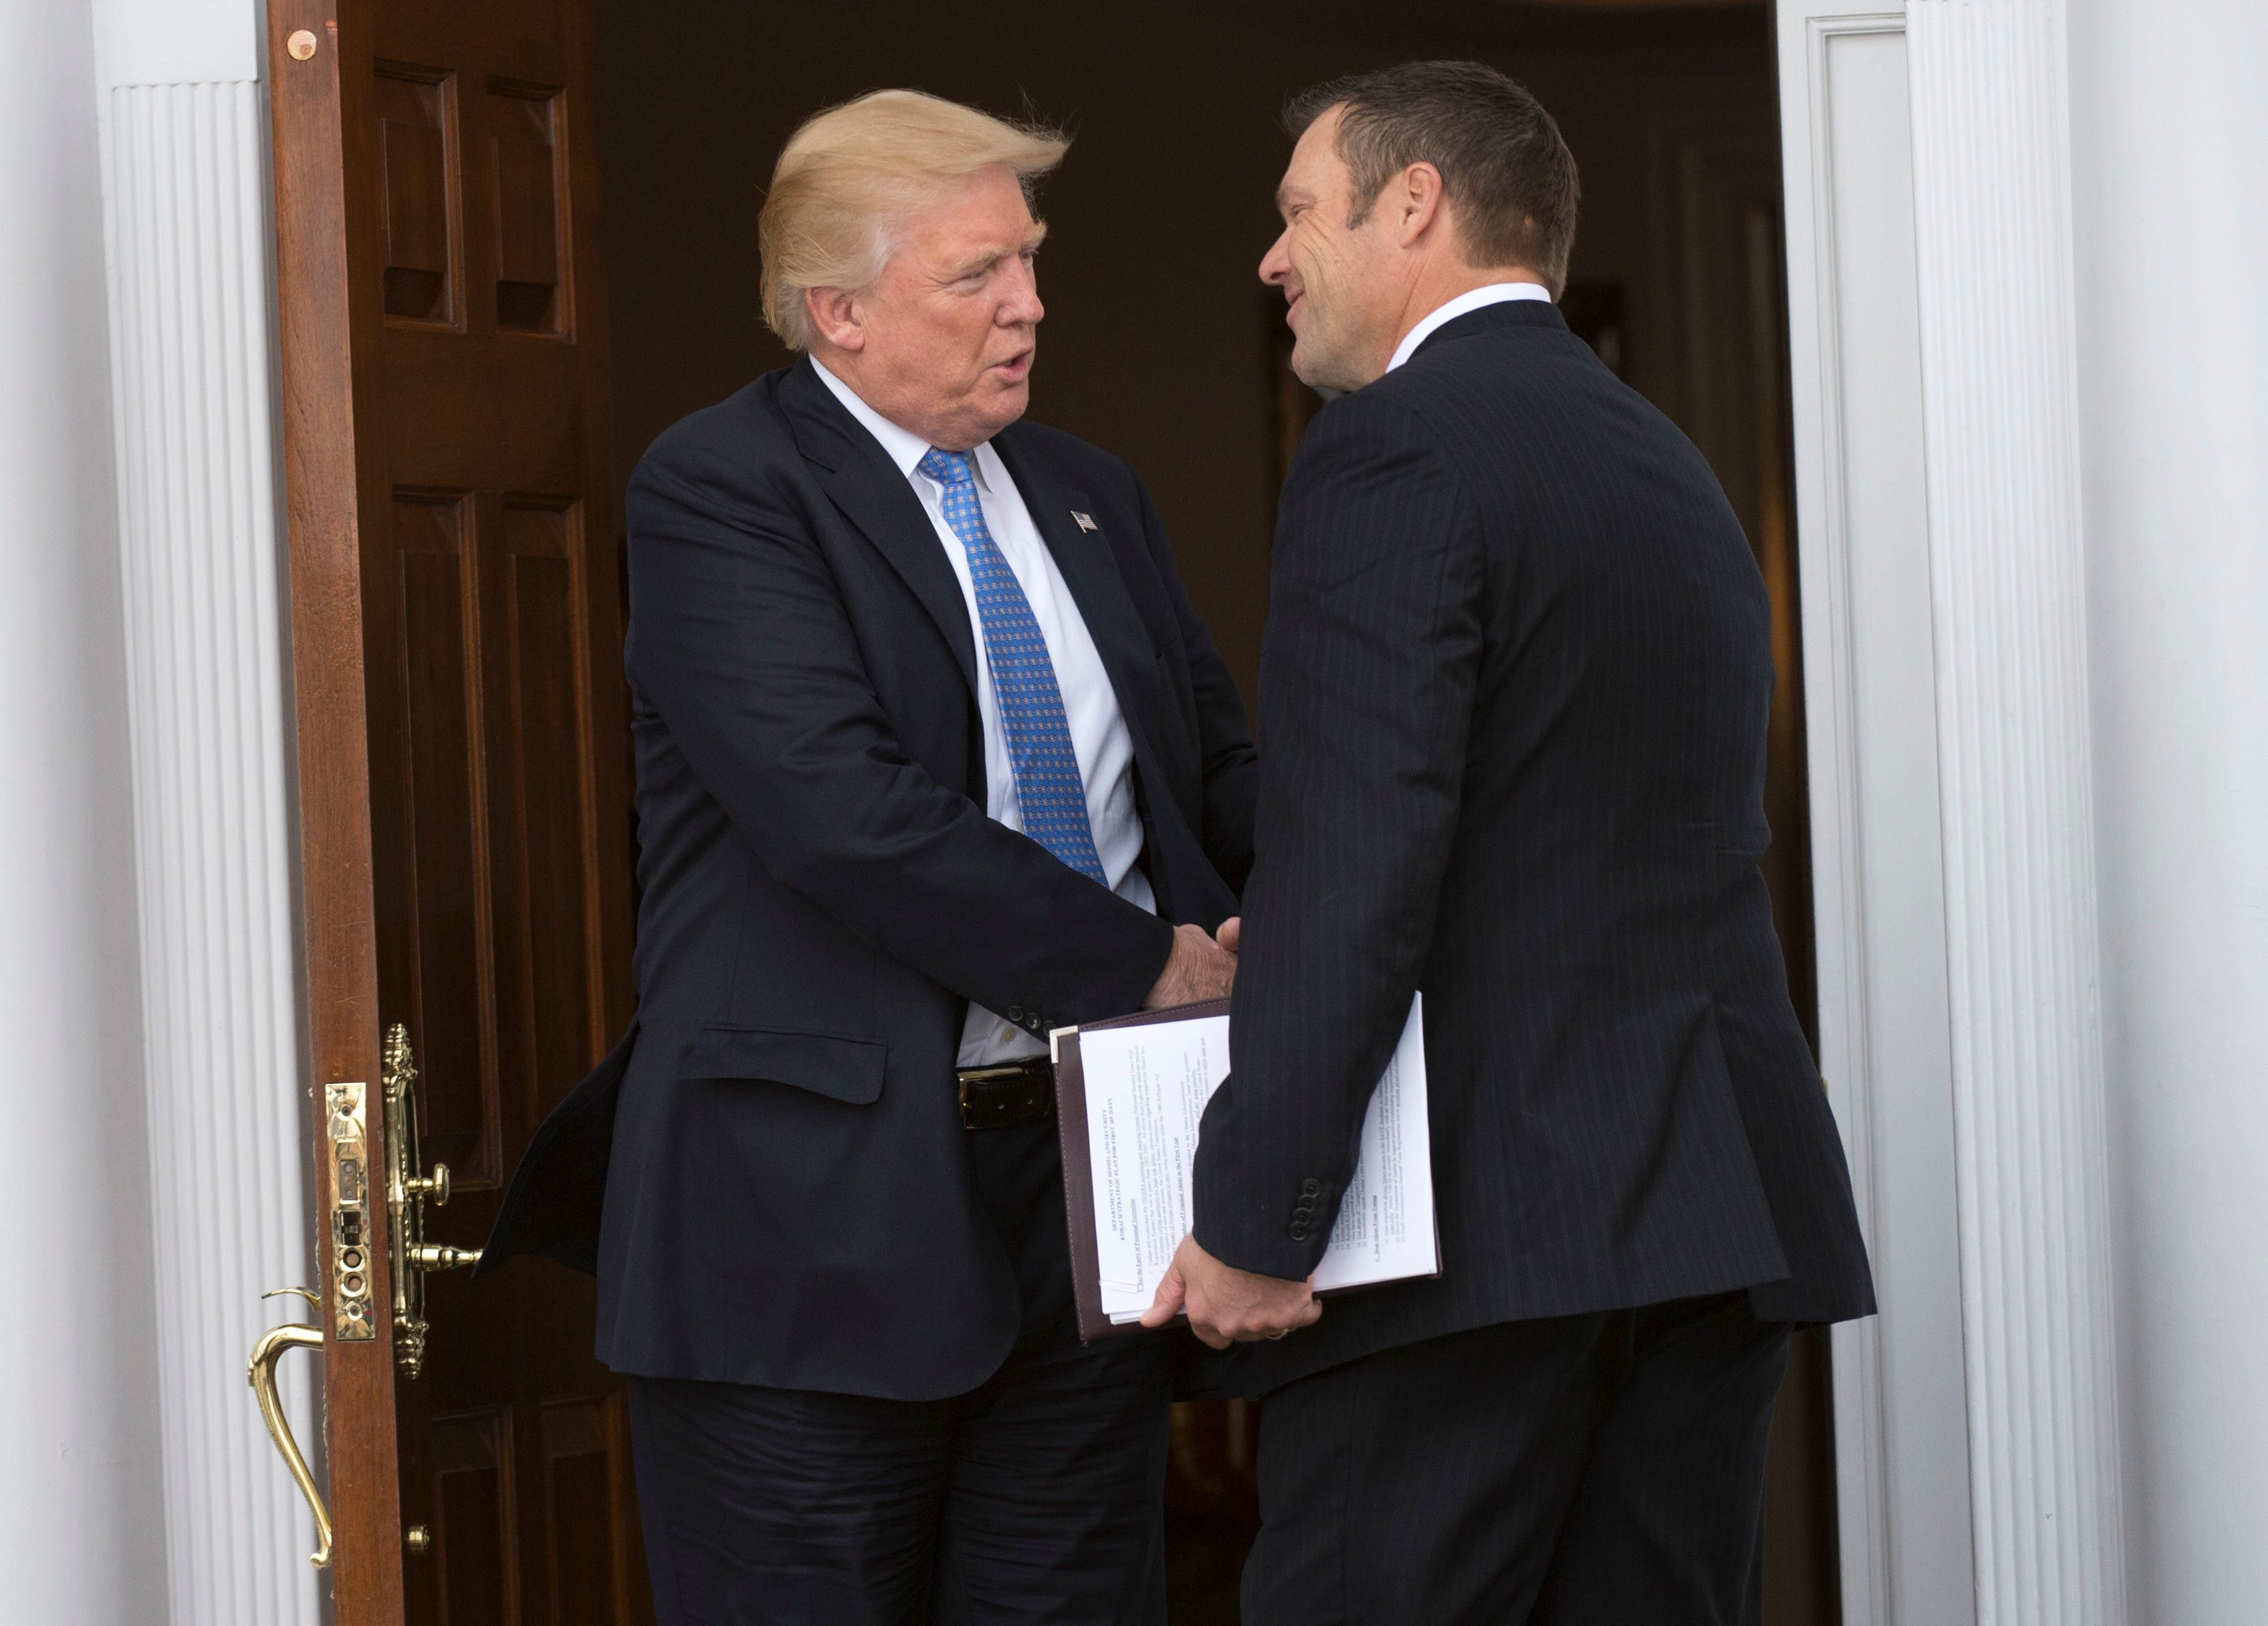 President-elect Donald Trump meets with Kris Kobach at the clubhouse of Trump National Golf Club November 20, 2016 in Bedminster, New Jersey. / AFP / Don EMMERT        (Photo credit should read DON EMMERT/AFP/Getty Images)